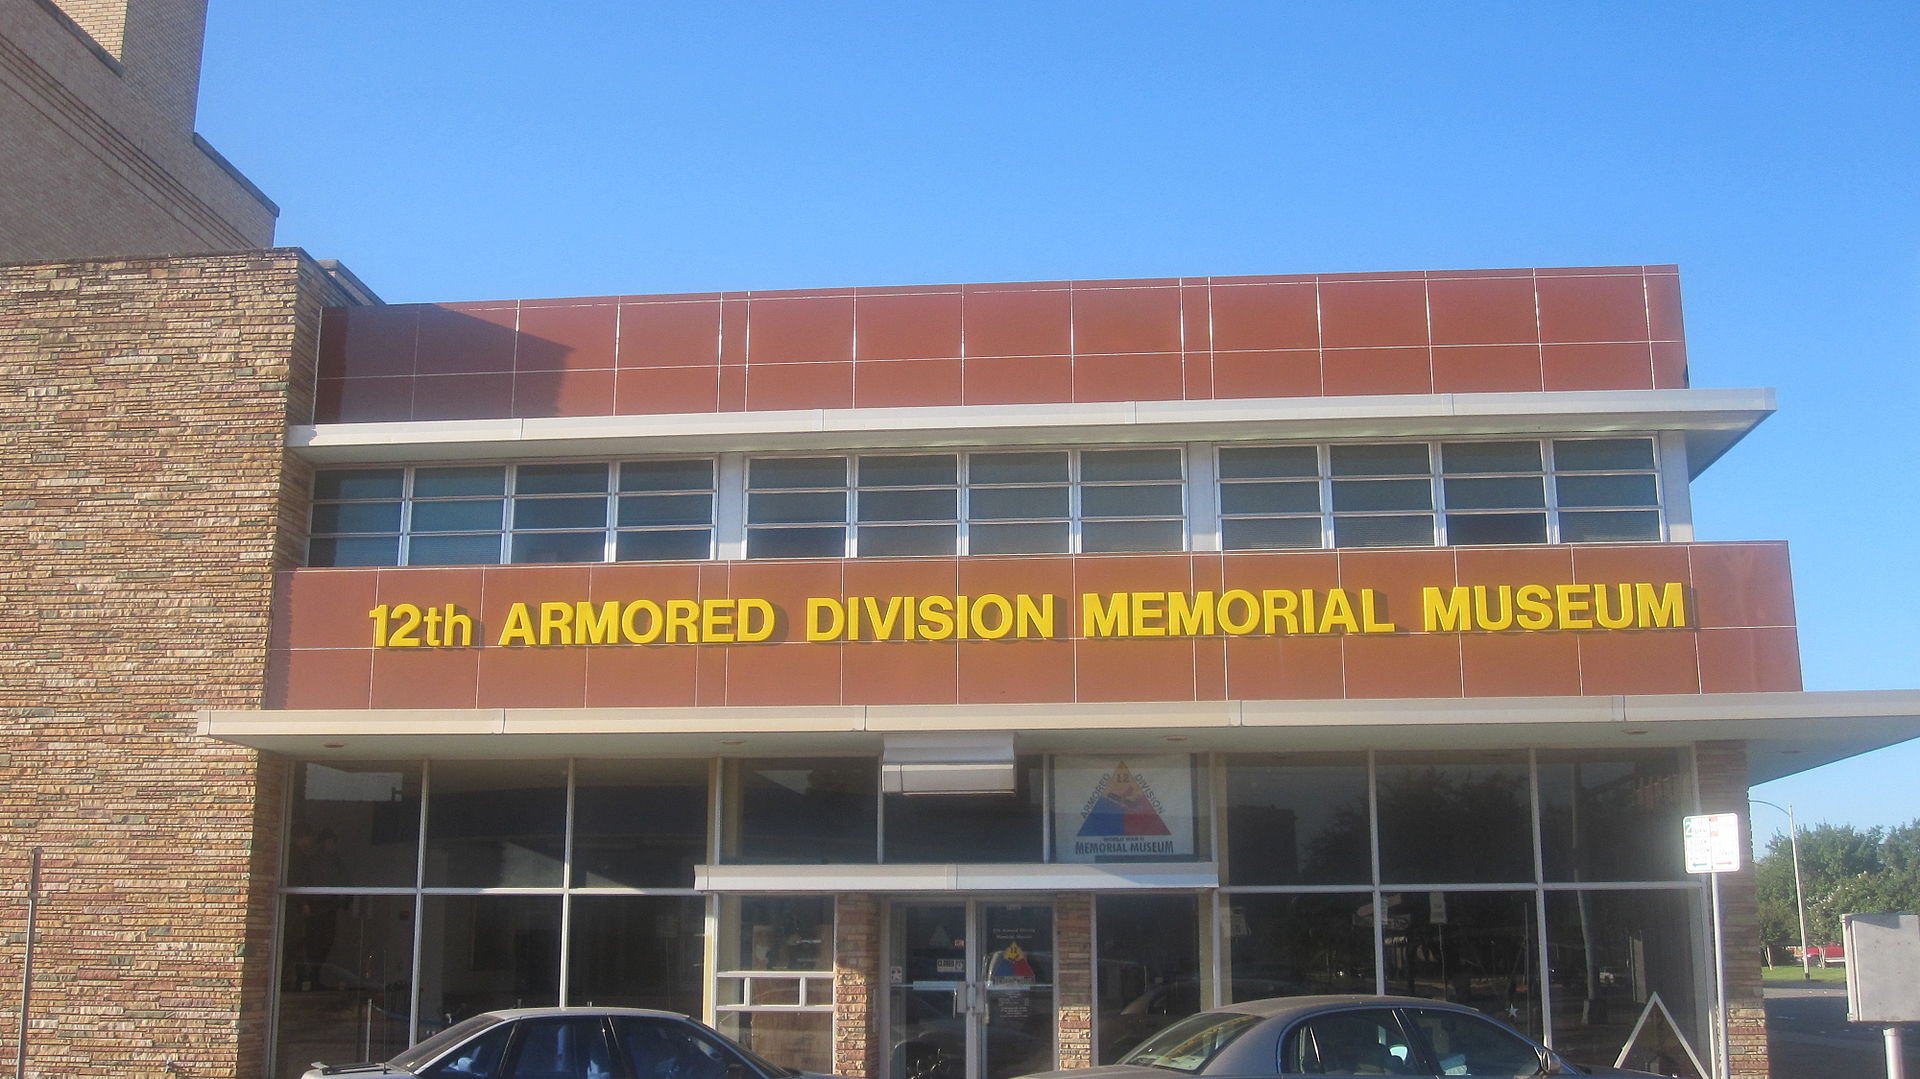 The 12th Armored Division Memorial Museum opened in 2001.